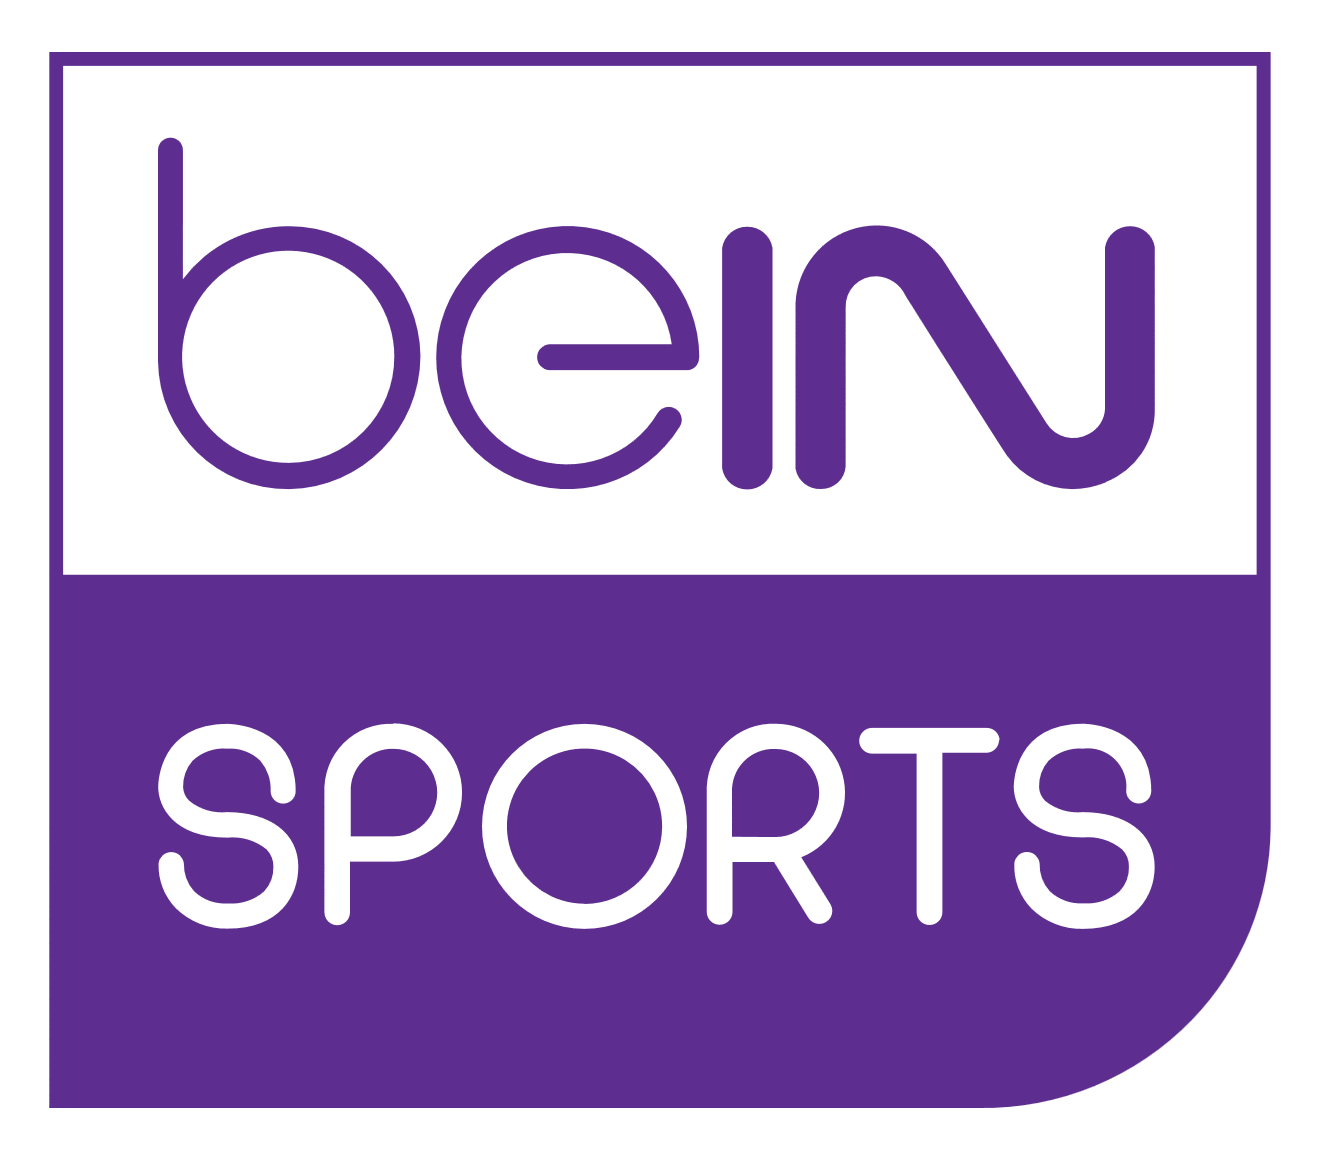 All Bein Sport Channels Frequencies - Channels Frequency